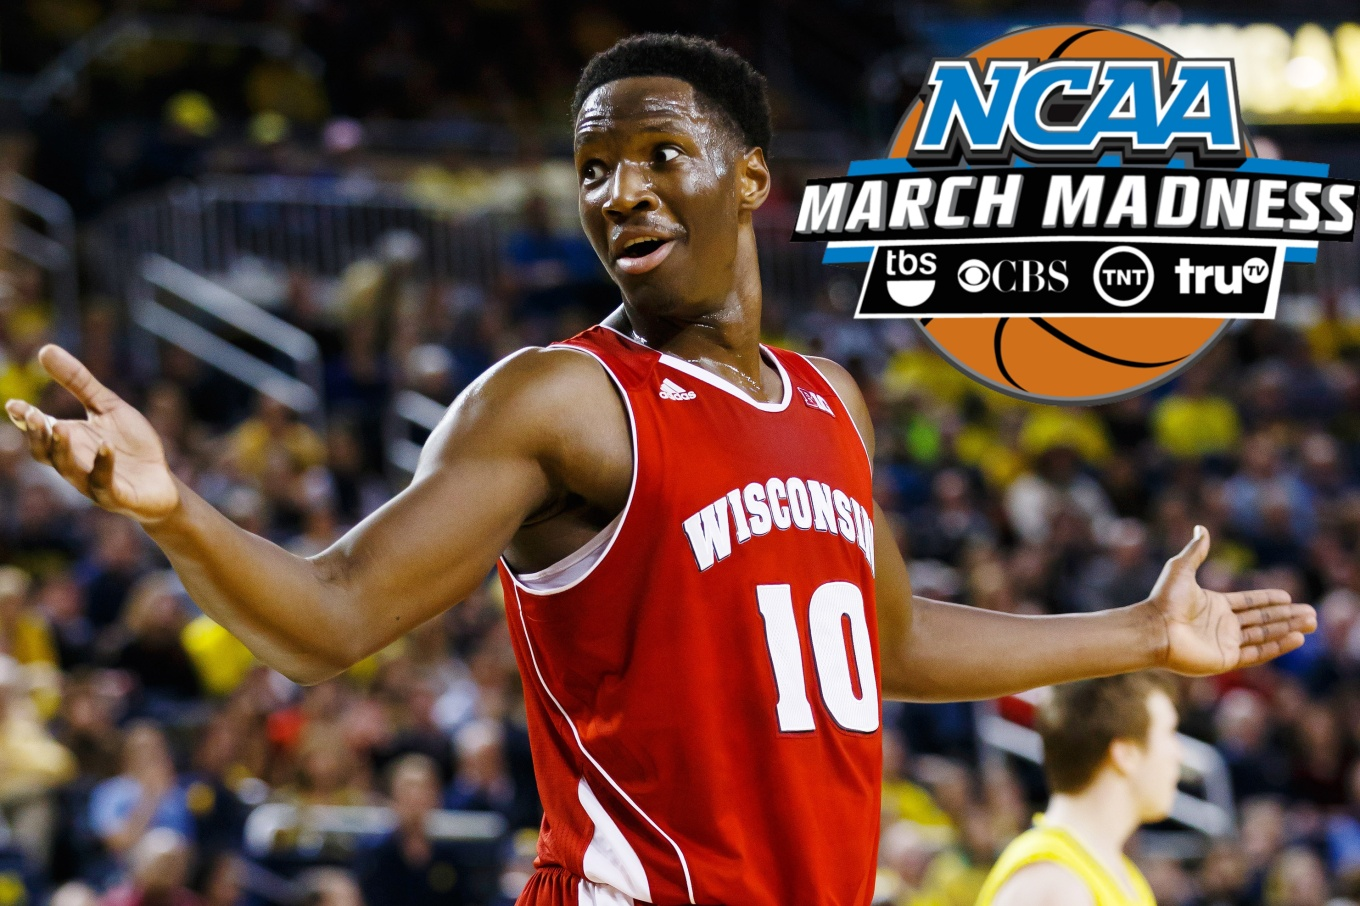 Jan 24, 2015; Ann Arbor, MI, USA; Wisconsin Badgers forward Nigel Hayes (10) reacts to a foul call in the first half against the Michigan Wolverines at Crisler Center. Mandatory Credit: Rick Osentoski-USA TODAY Sports